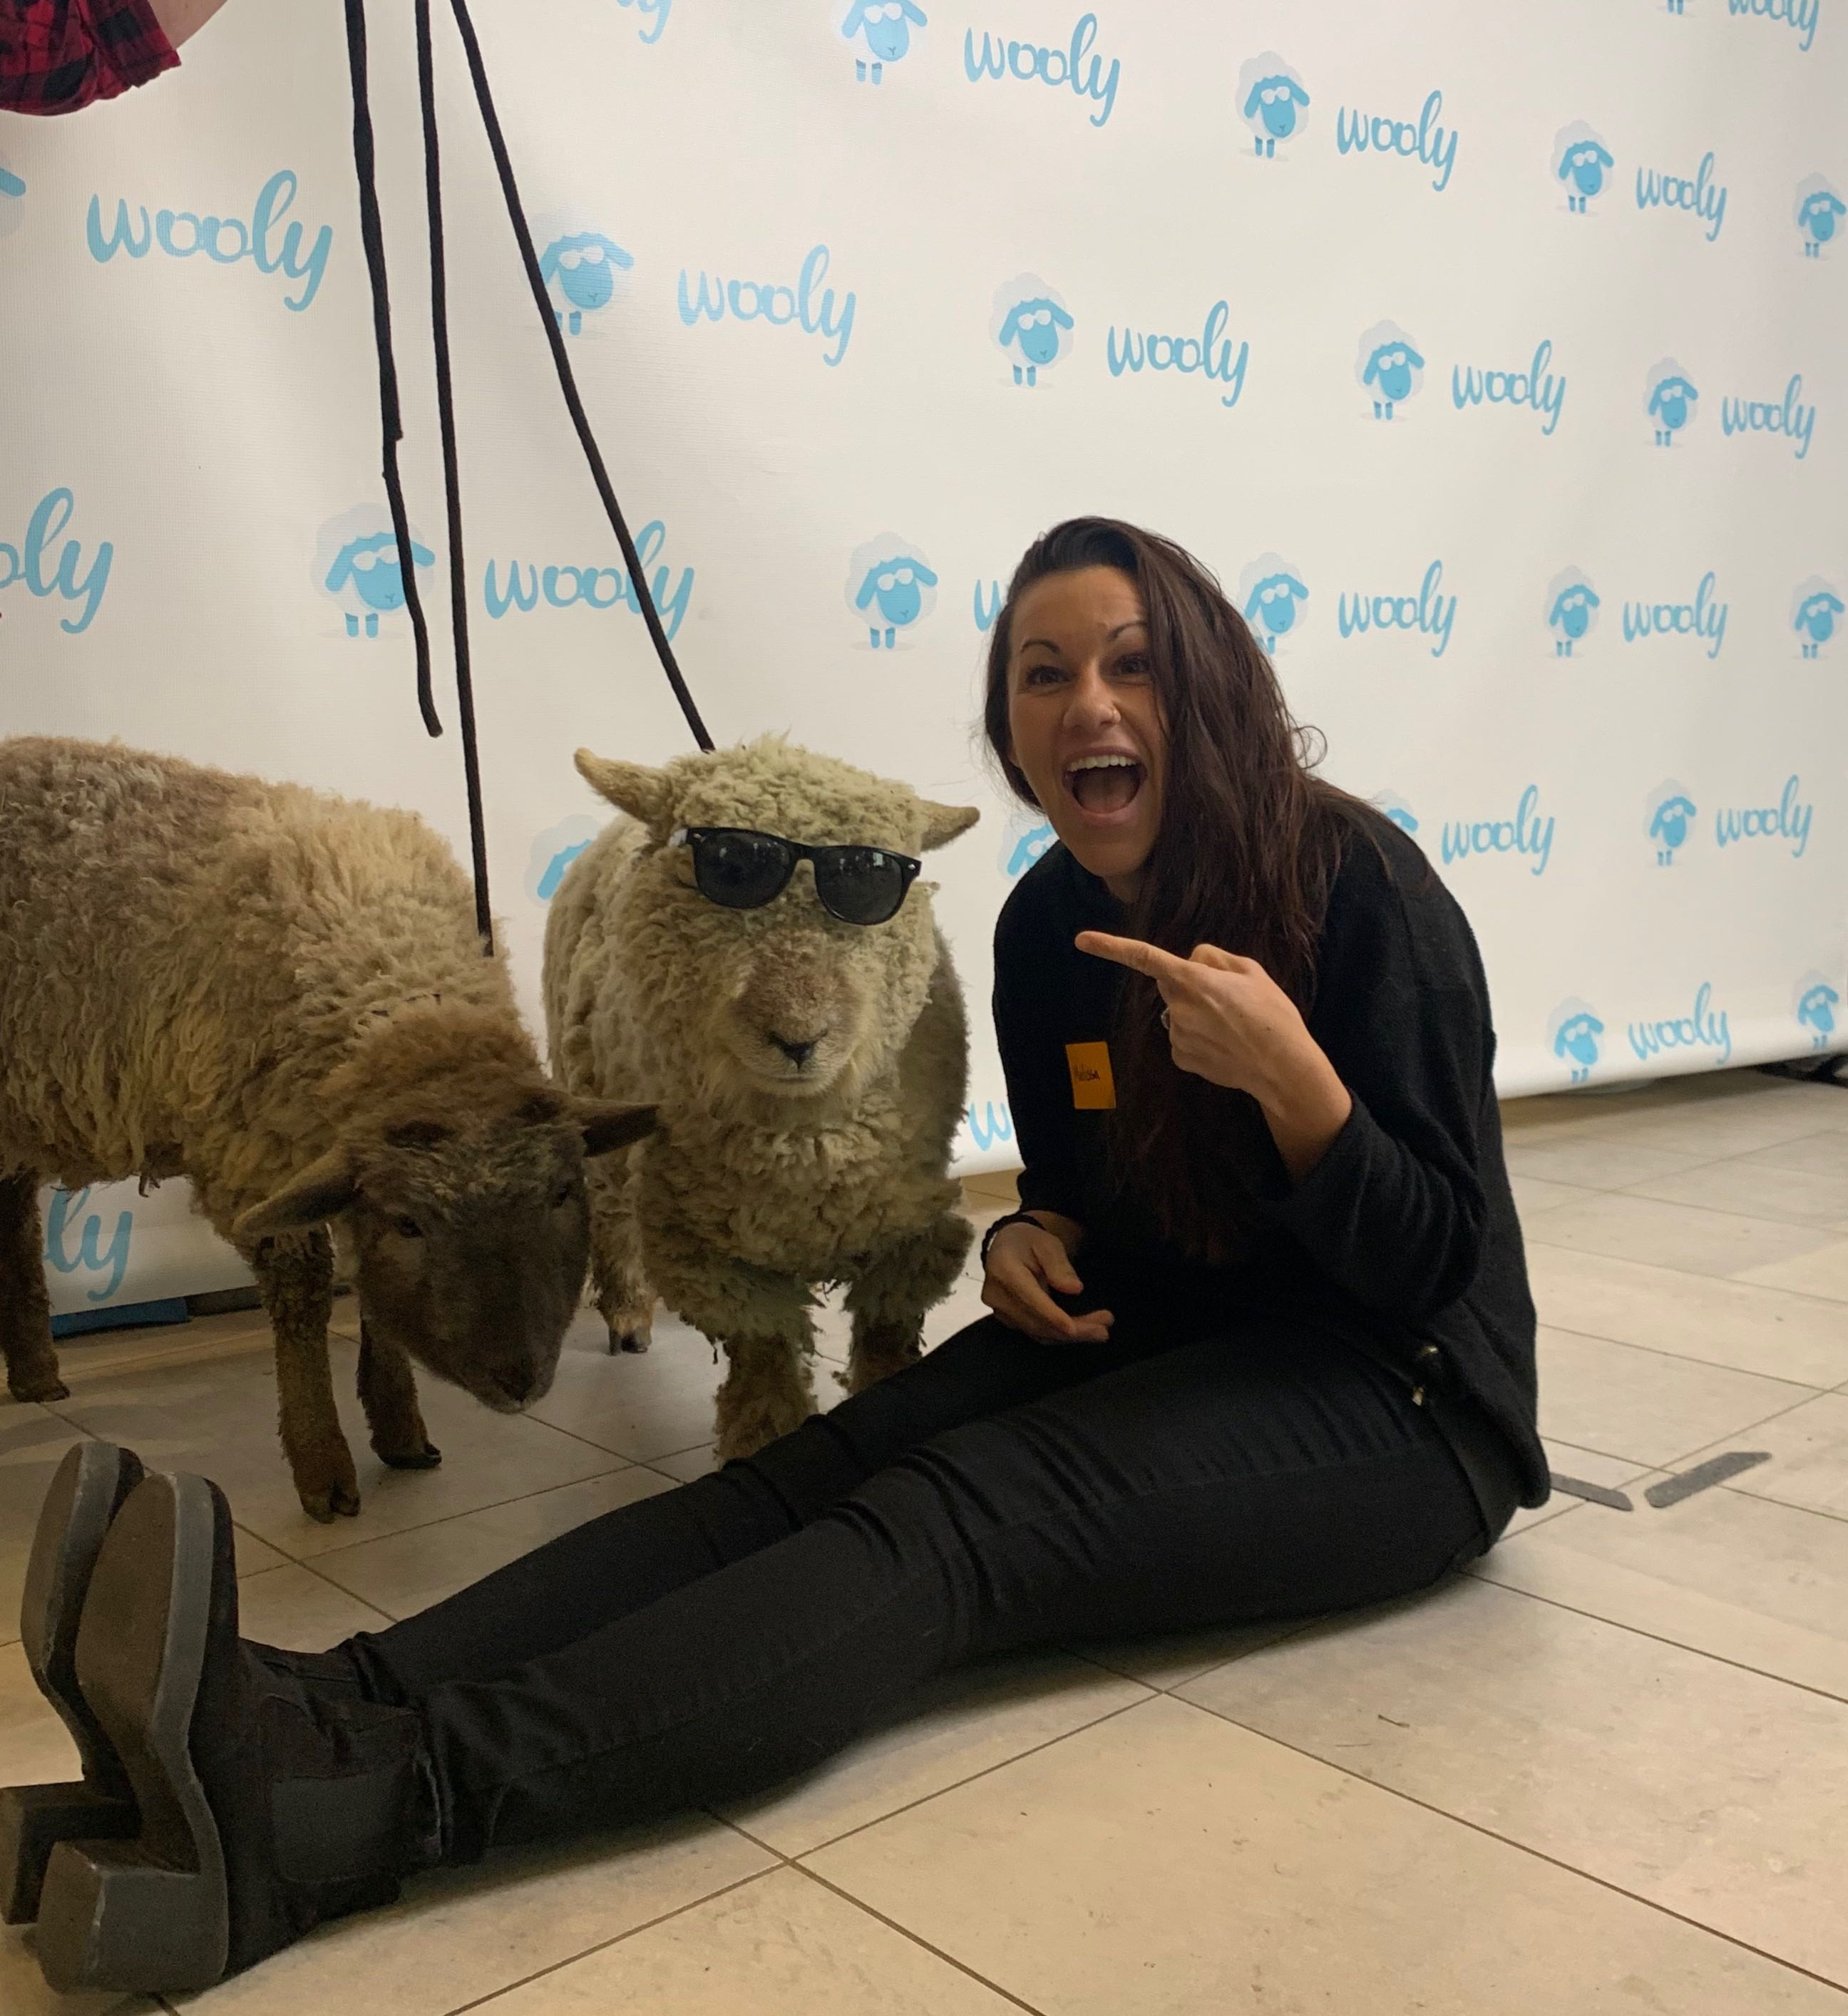 The sheep were a hit at the Wooly luncheon